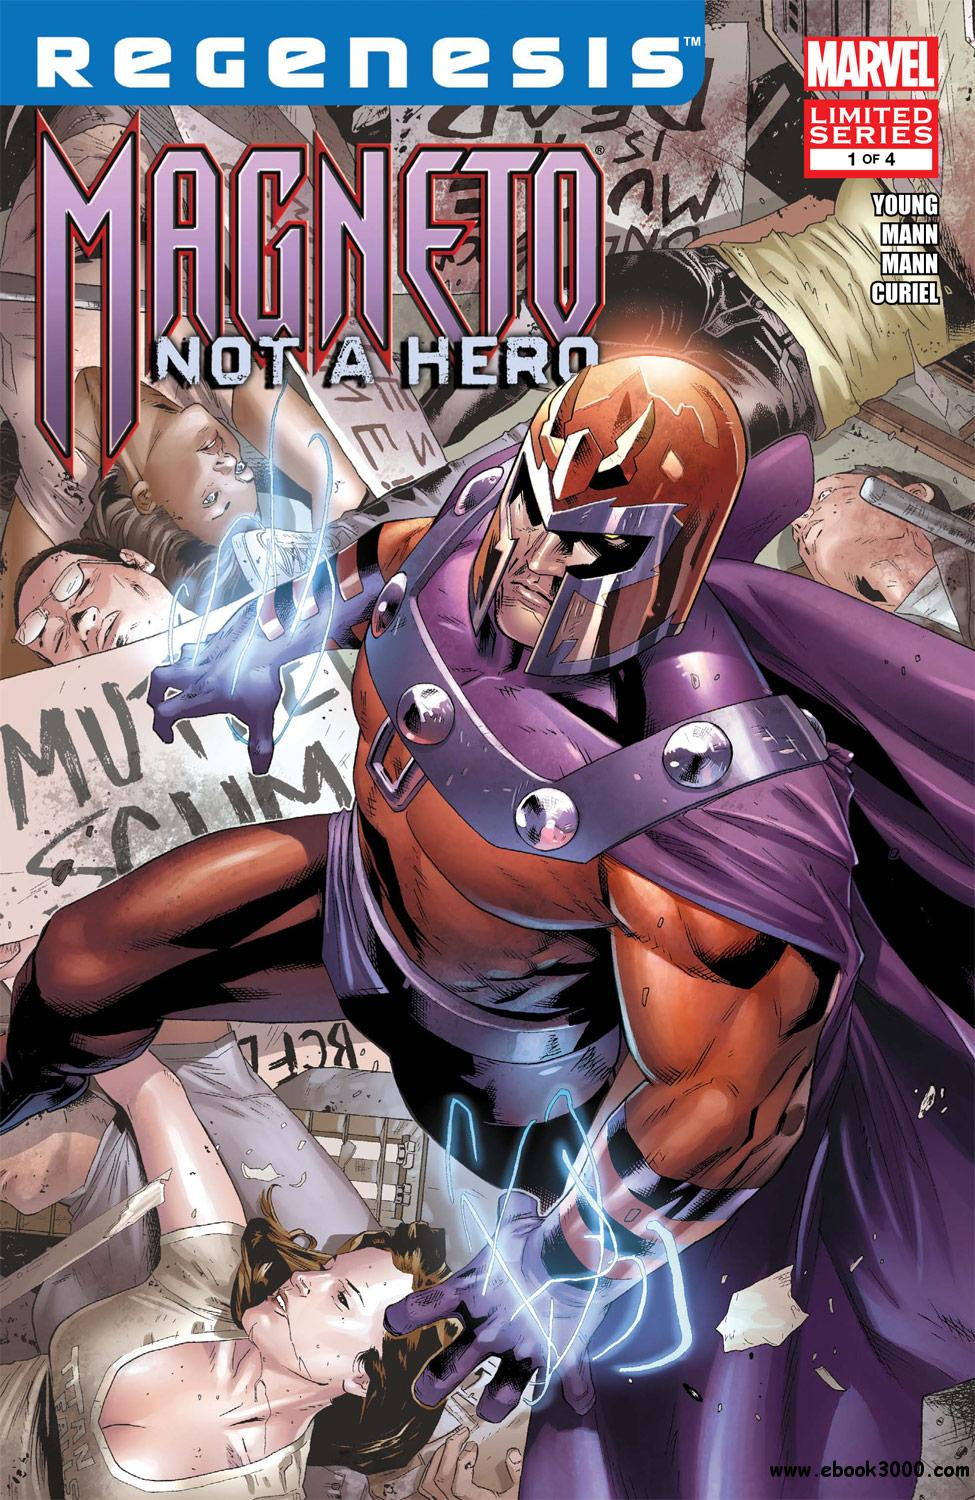 Magneto - Not a Hero #1 (of 04) (2012) free download